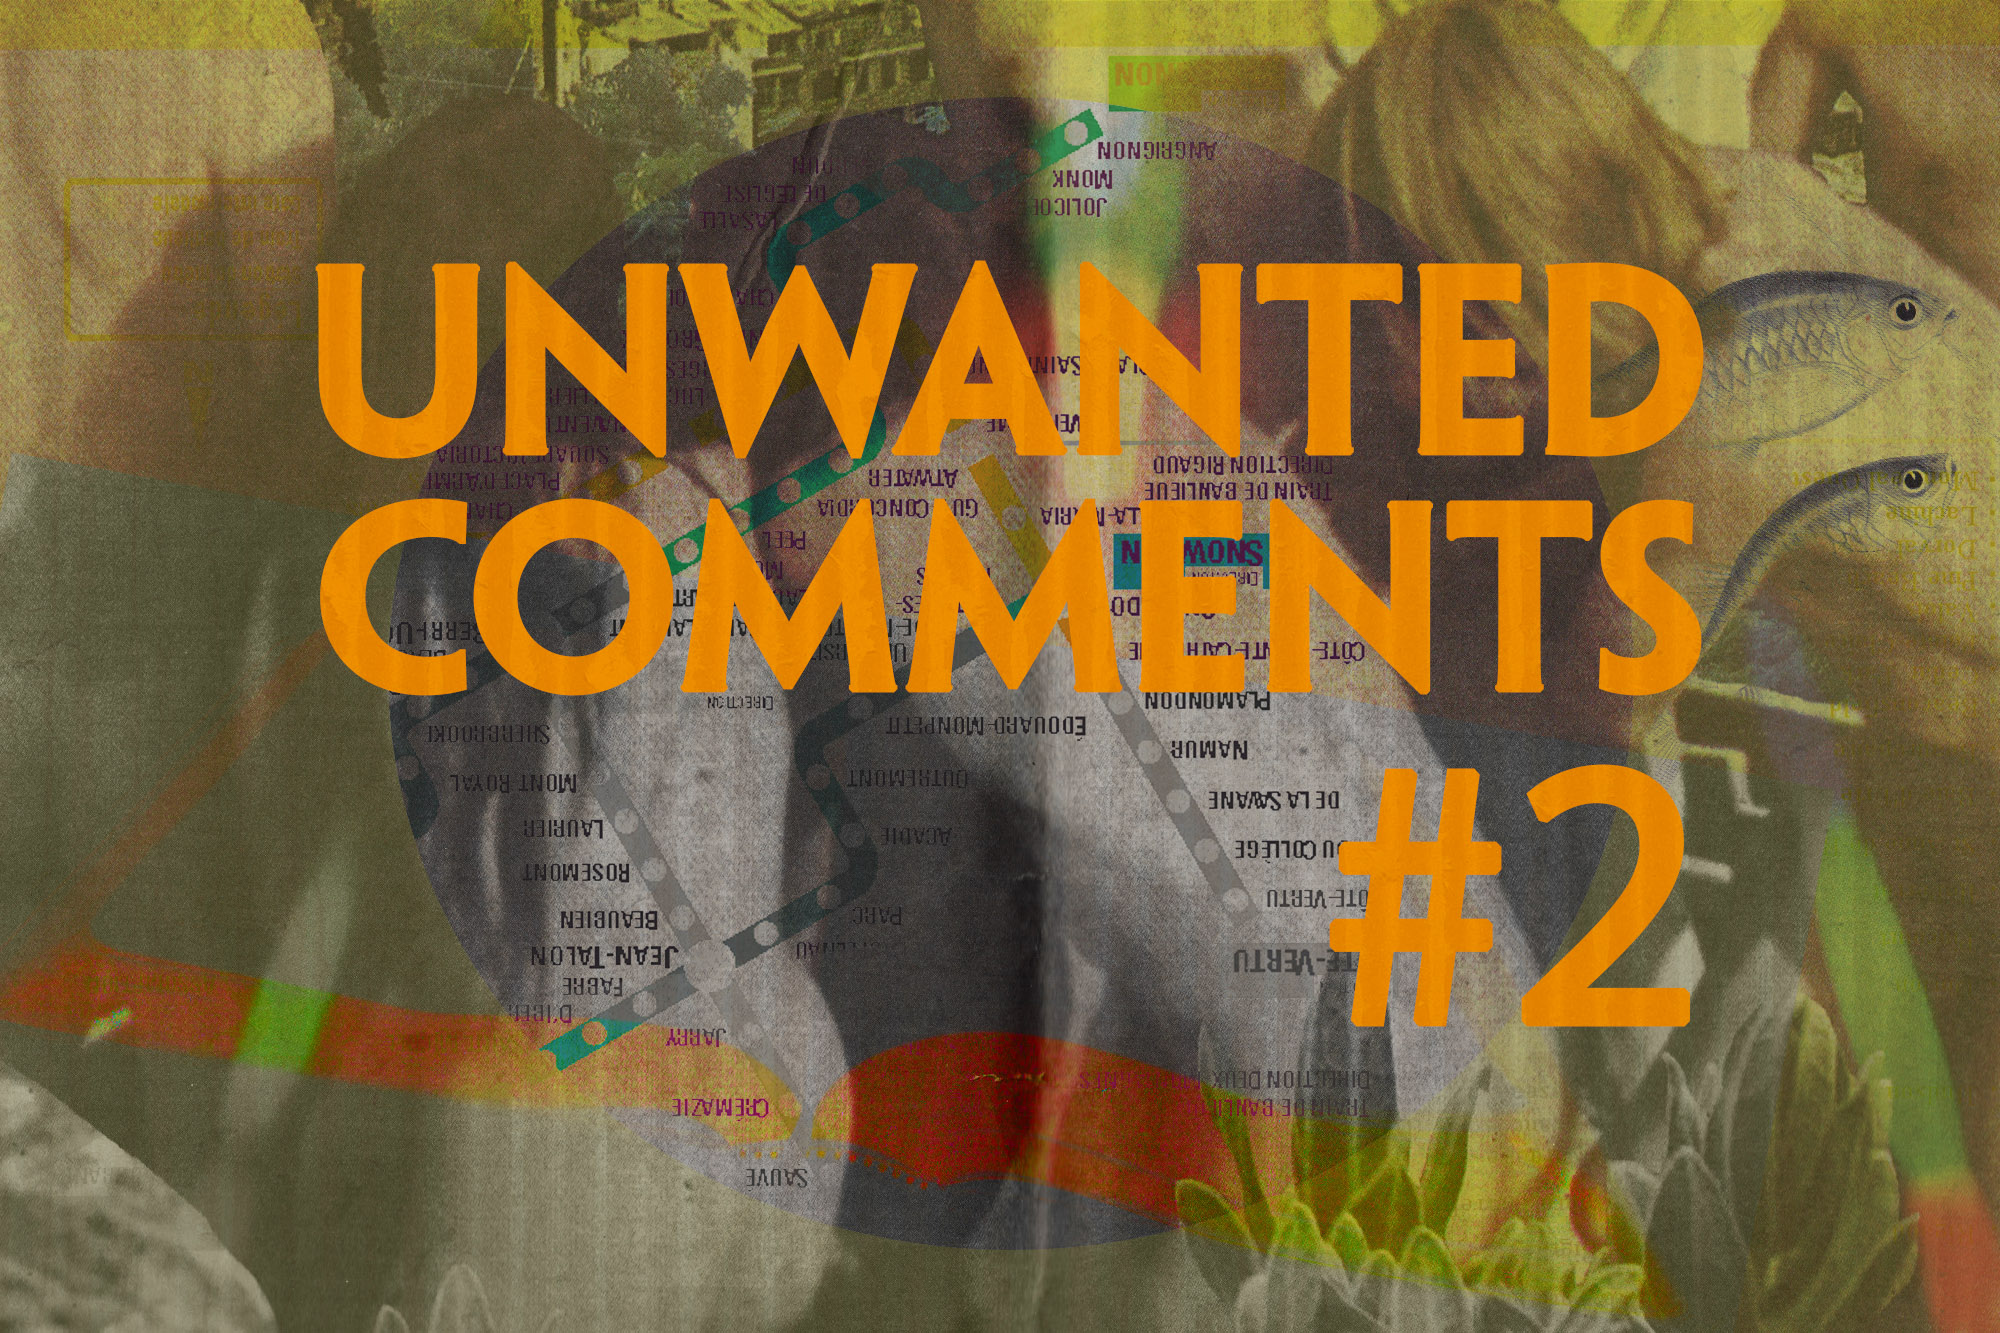 UNWANTED COMMENTS #2